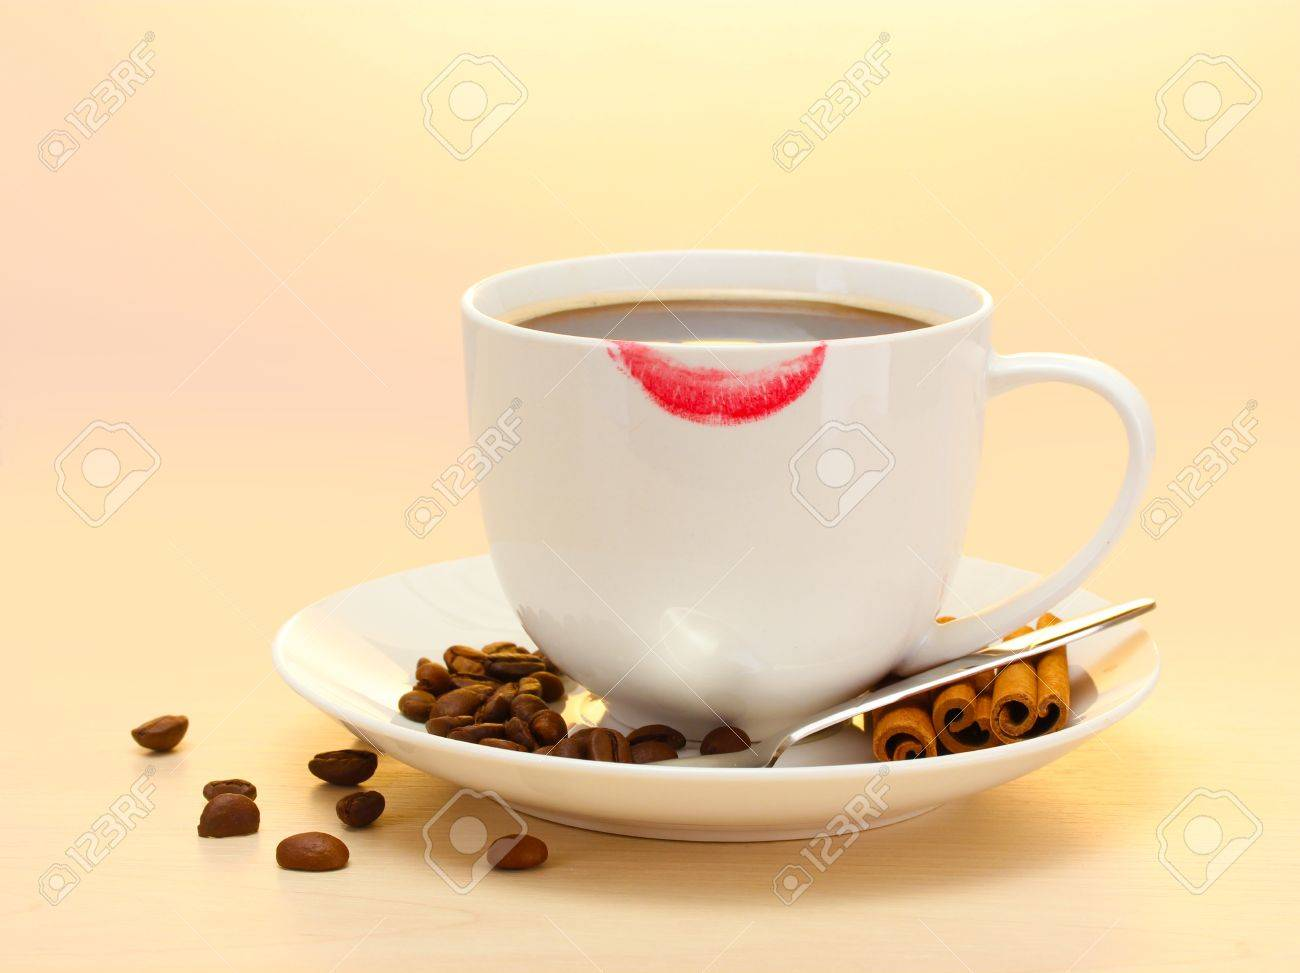 cup of coffee with lipstick mark beans and cinnamon sticks on wooden table Stock Photo - 14170096